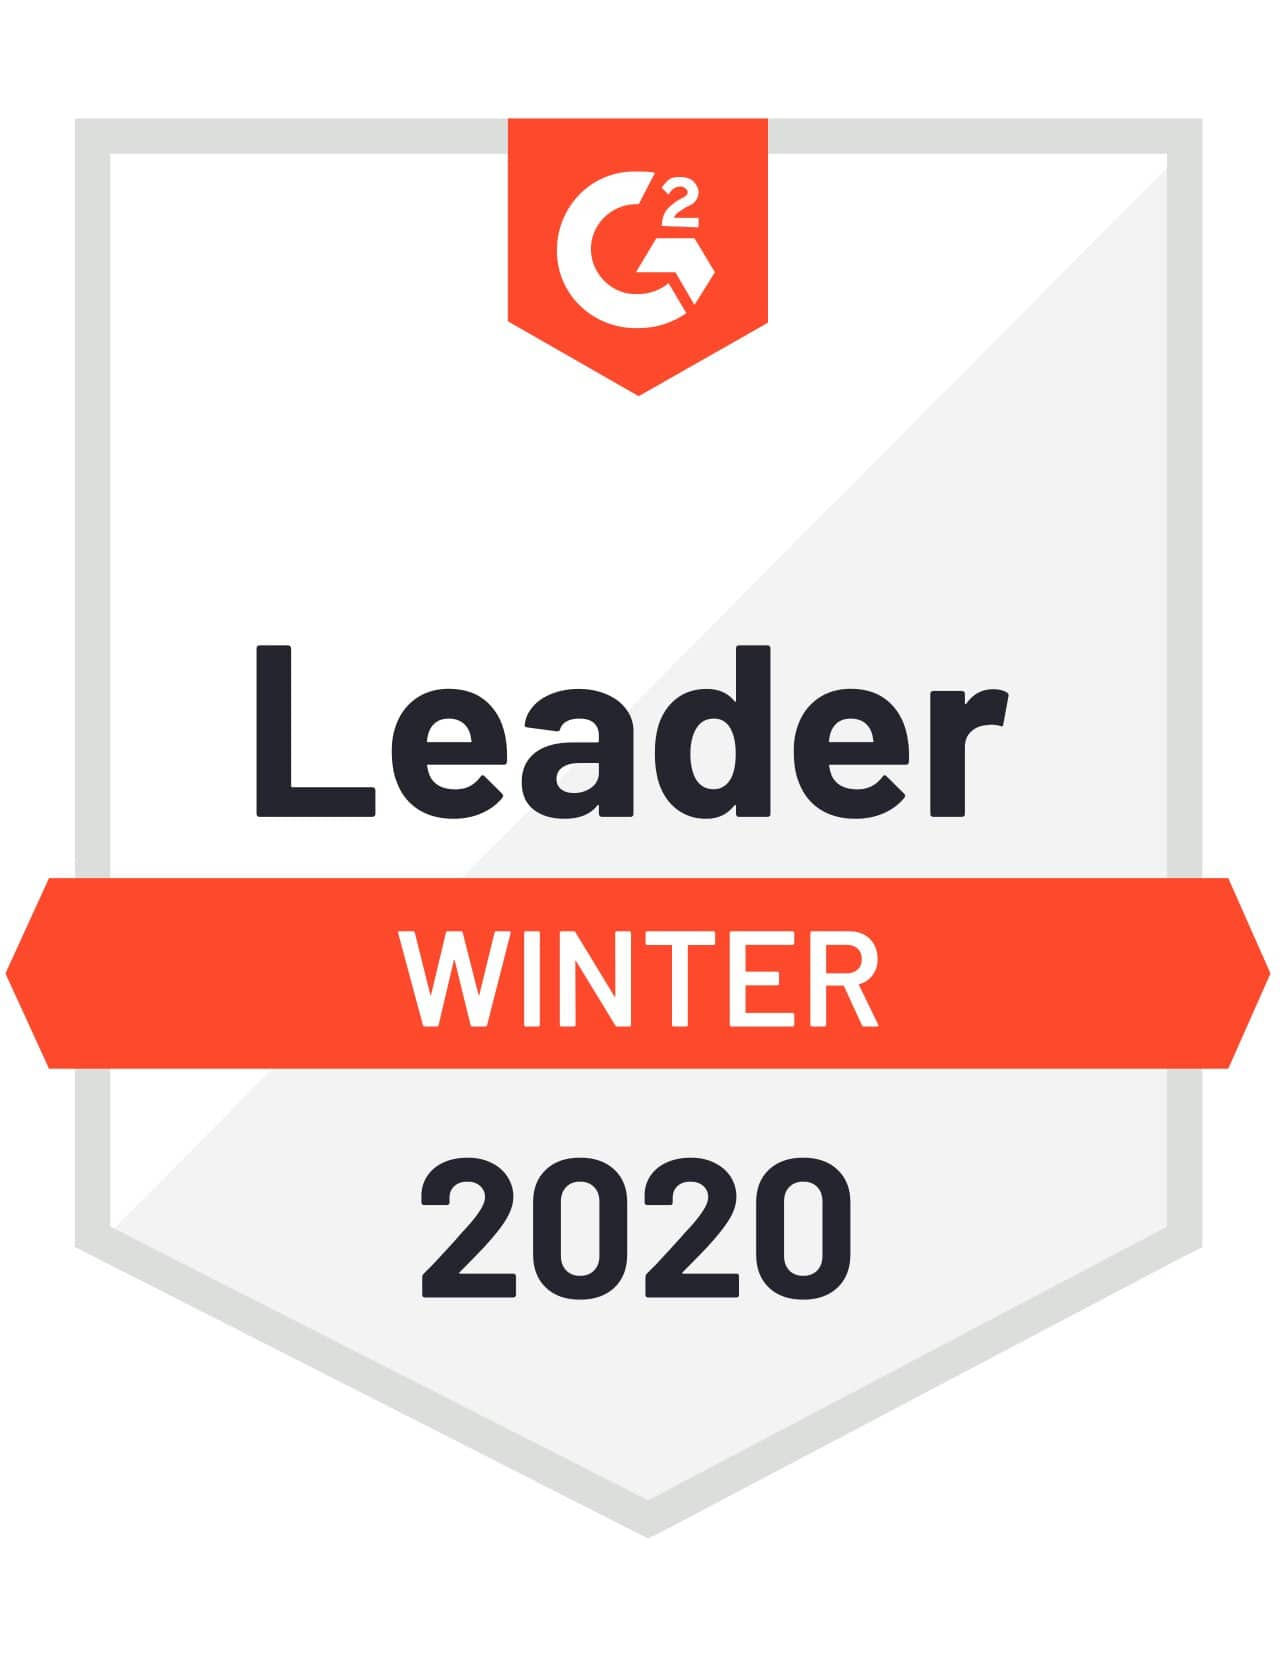 Badge from G2 Crowd for Windward: Leader Winter 2020